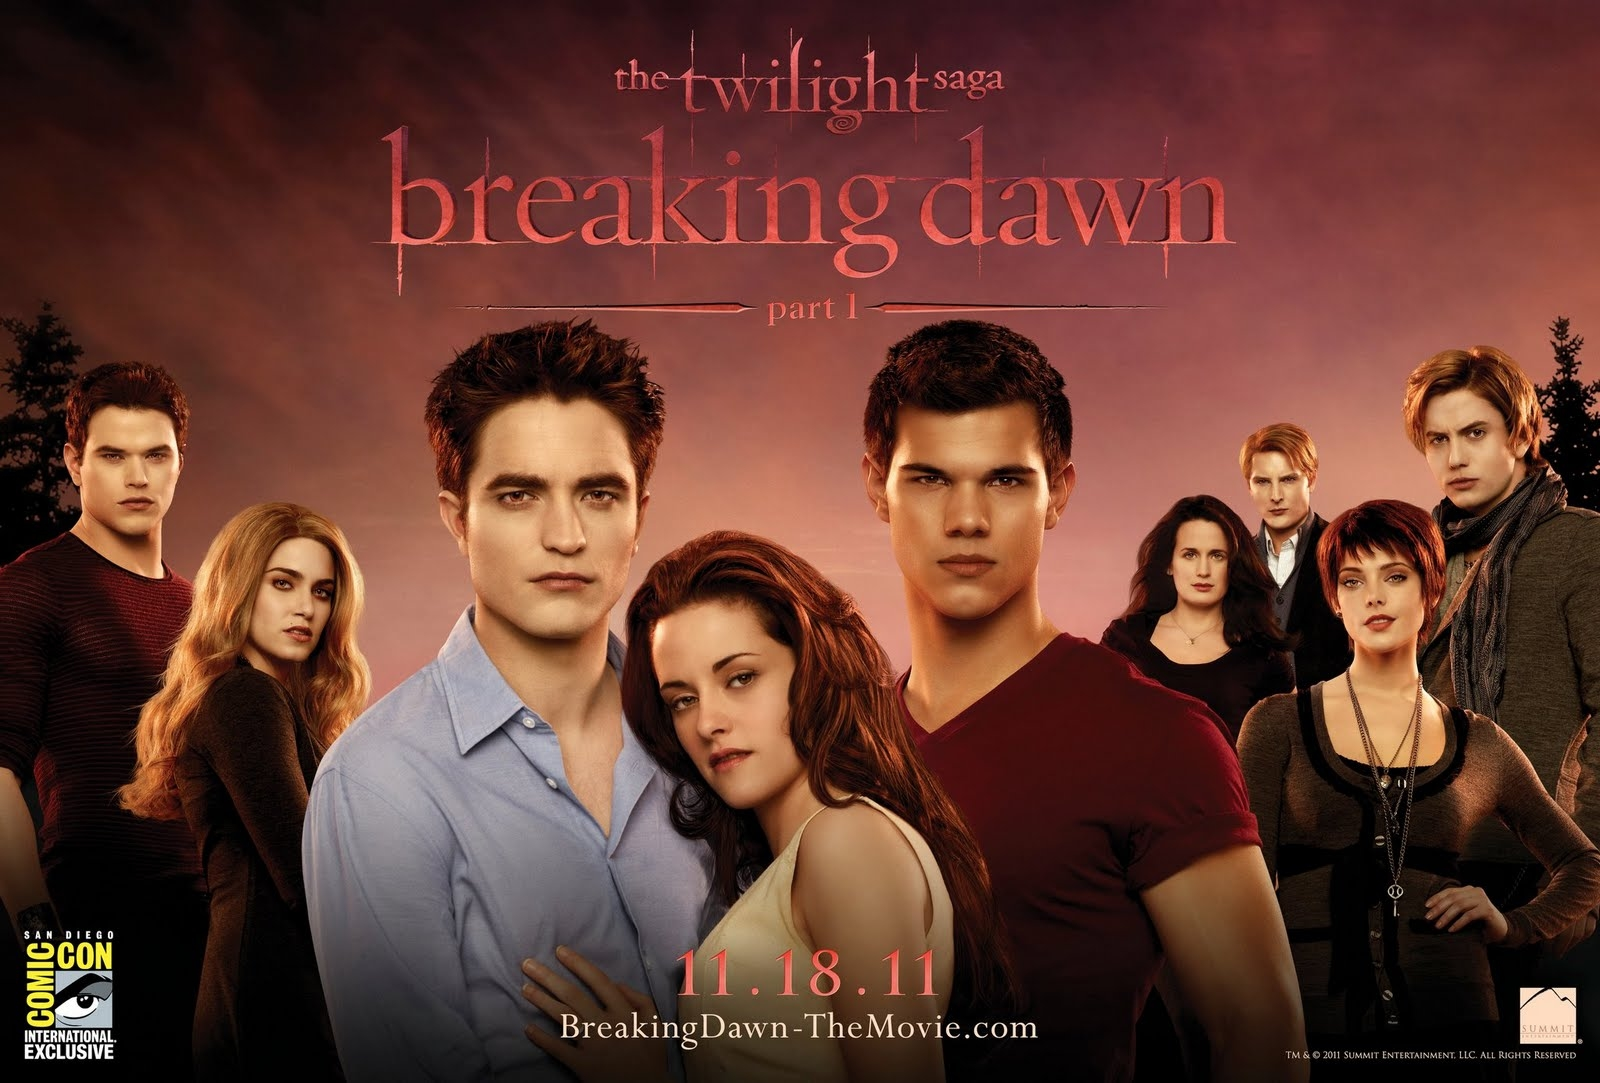 Breaking Dawn (The Twilight Saga, Book 4) by Stephenie Meyer